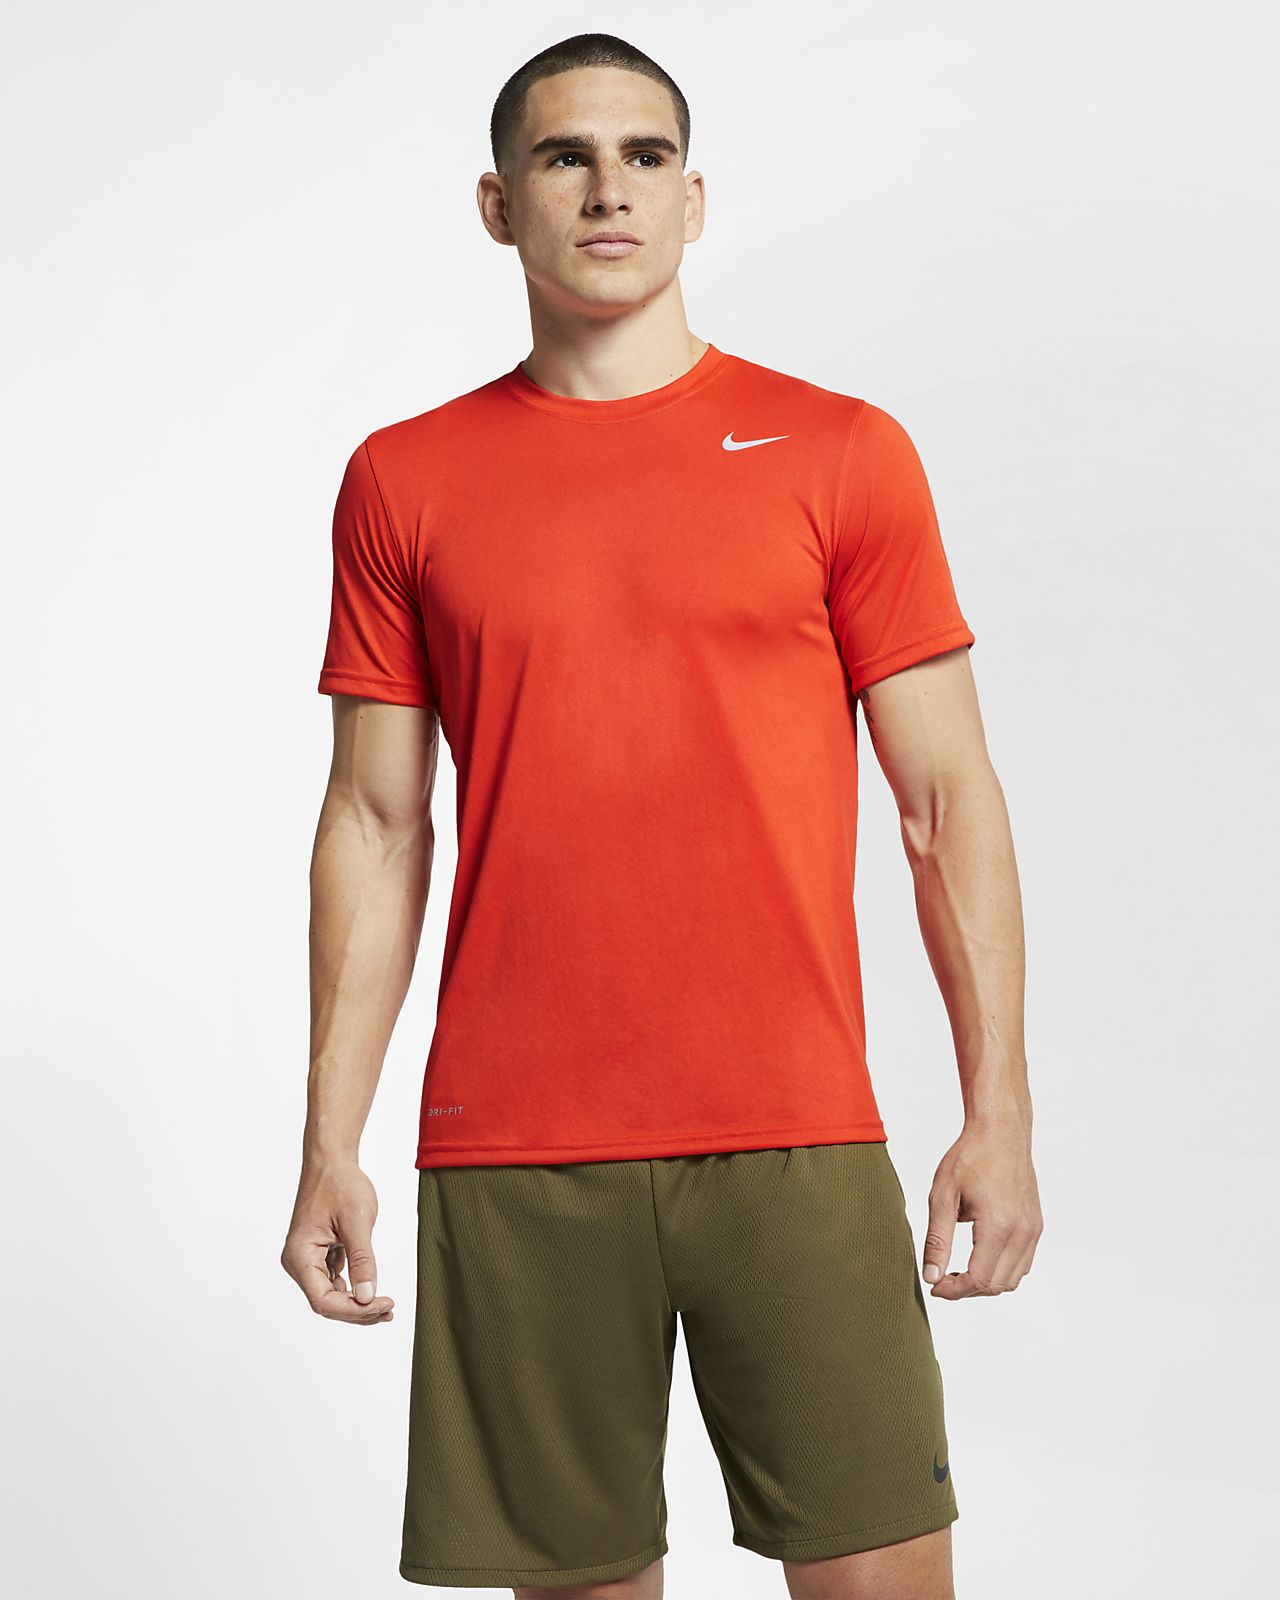 2947b4323 Nike Legend 2.0 Men's Training T-Shirt. Nike.com